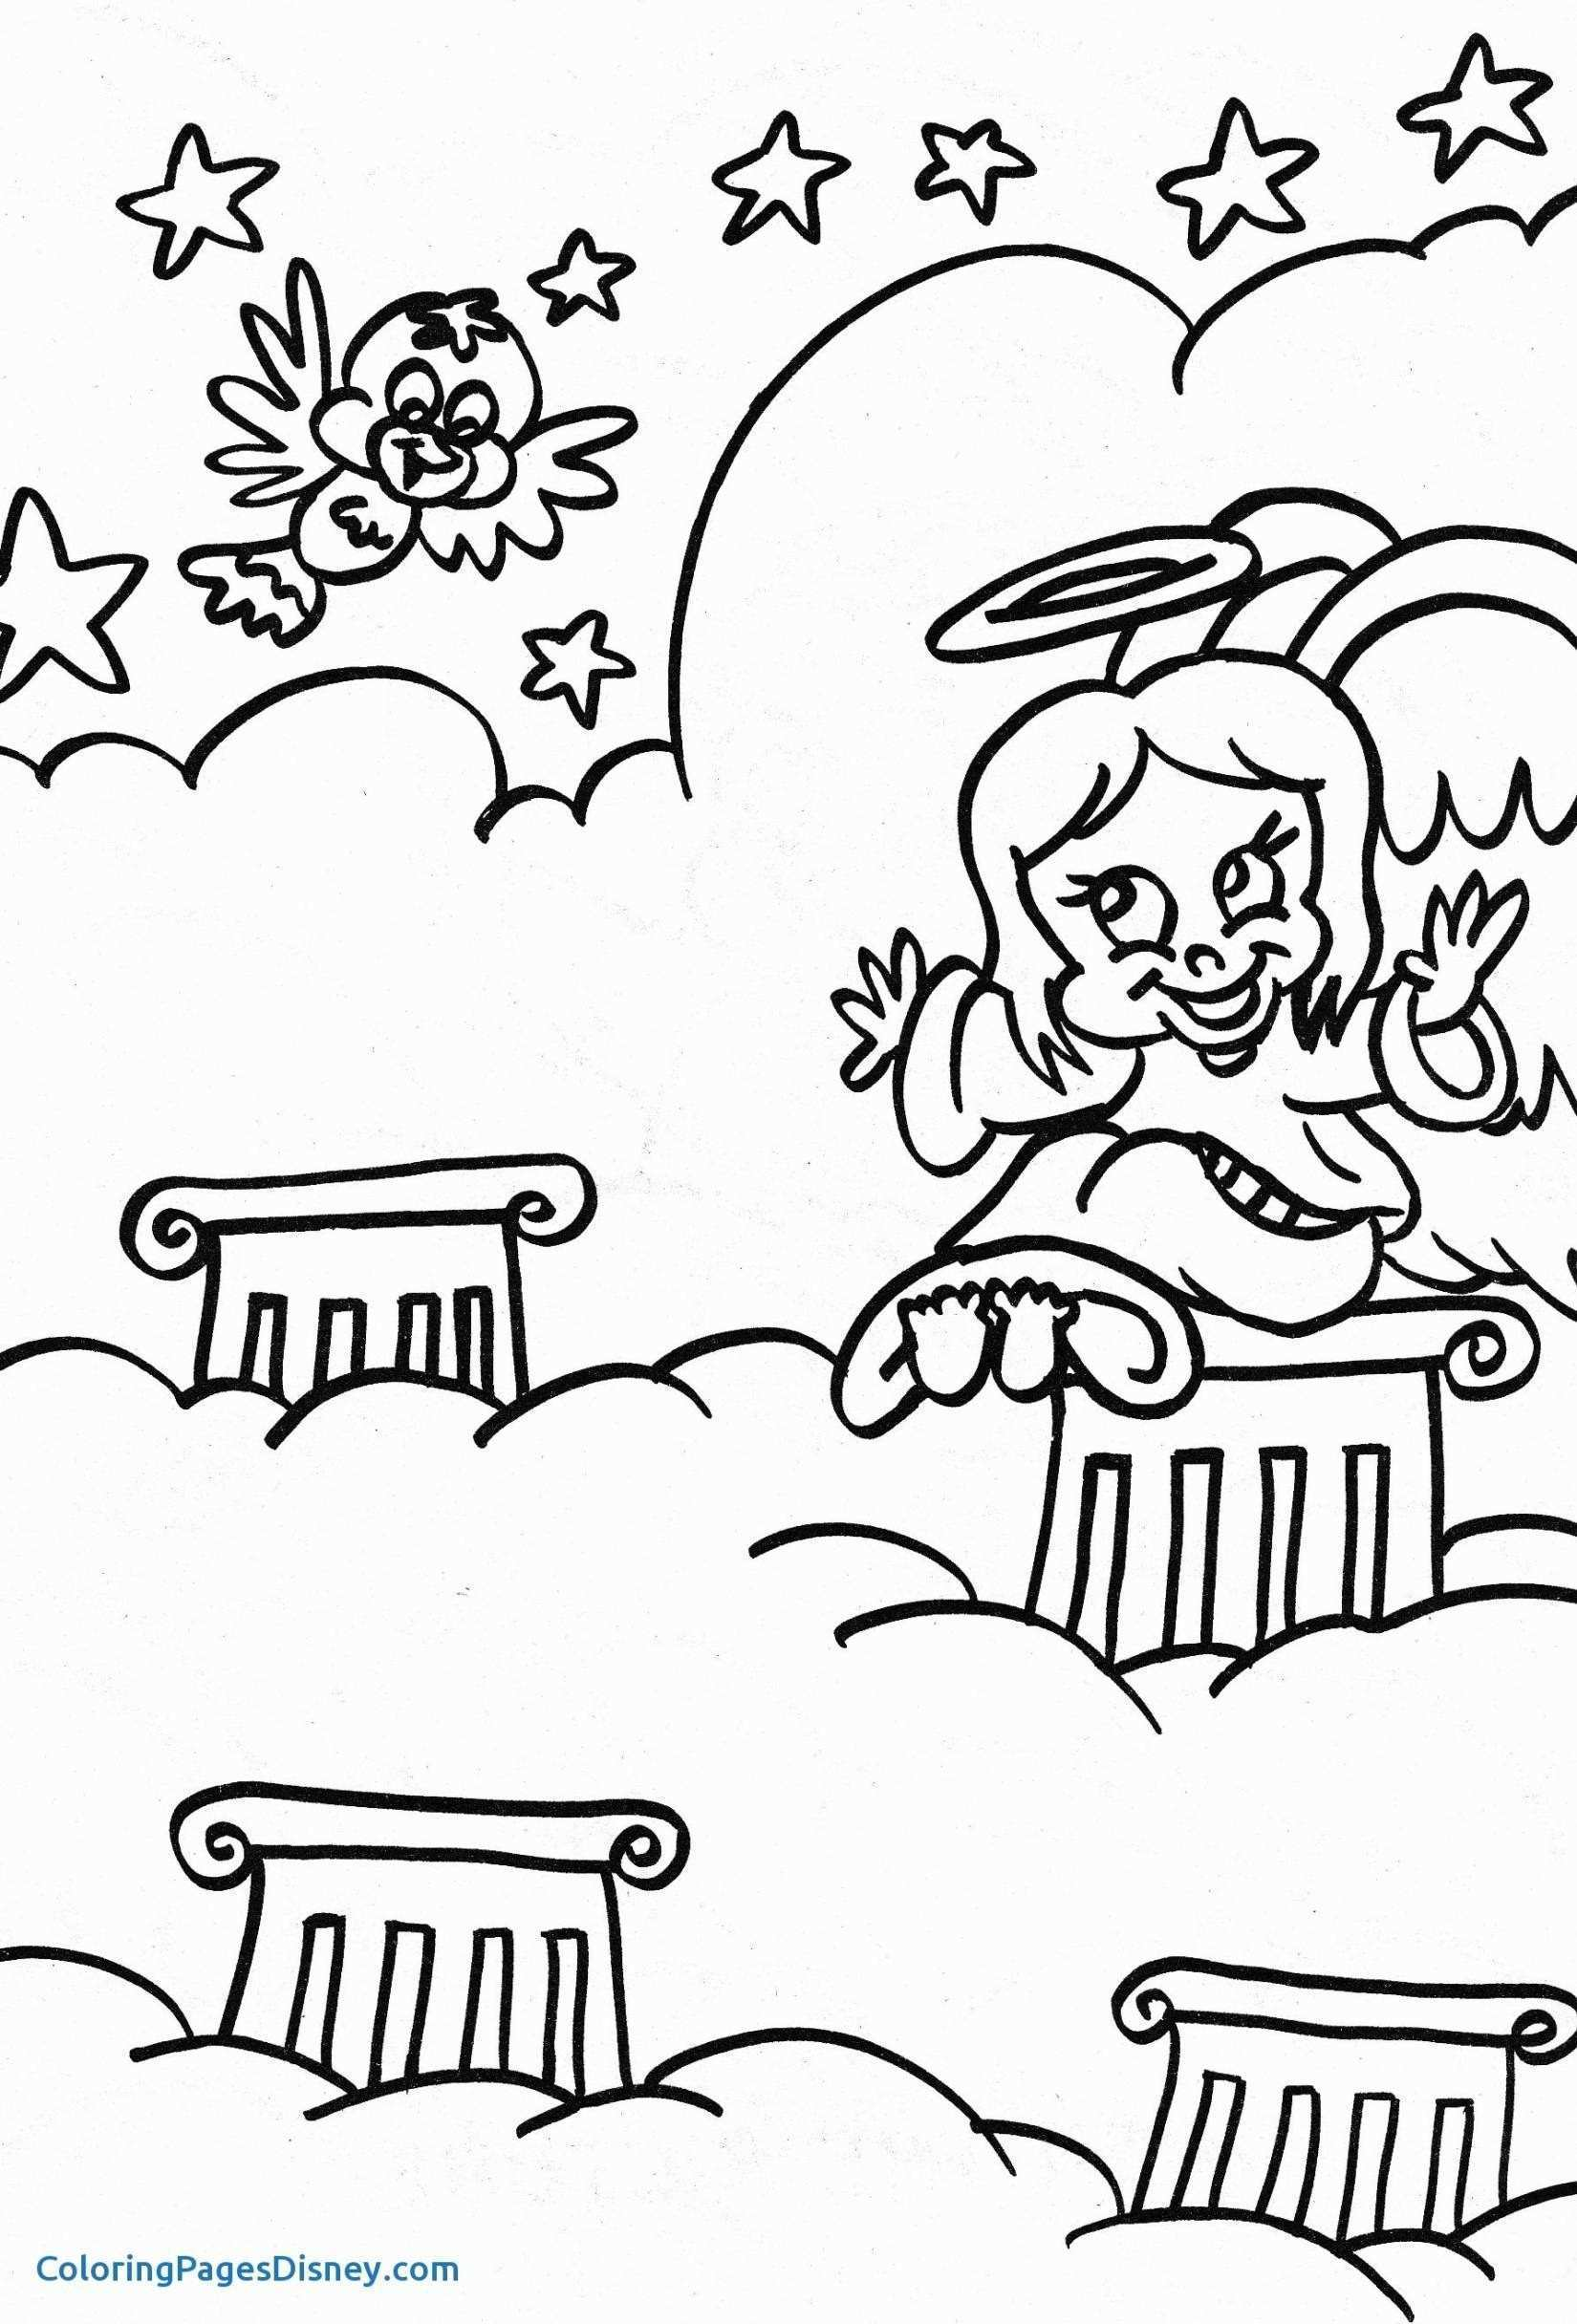 Gallery Frames Inspirational Coloring Picture Frames Best Coloring Pages Children S Coloring